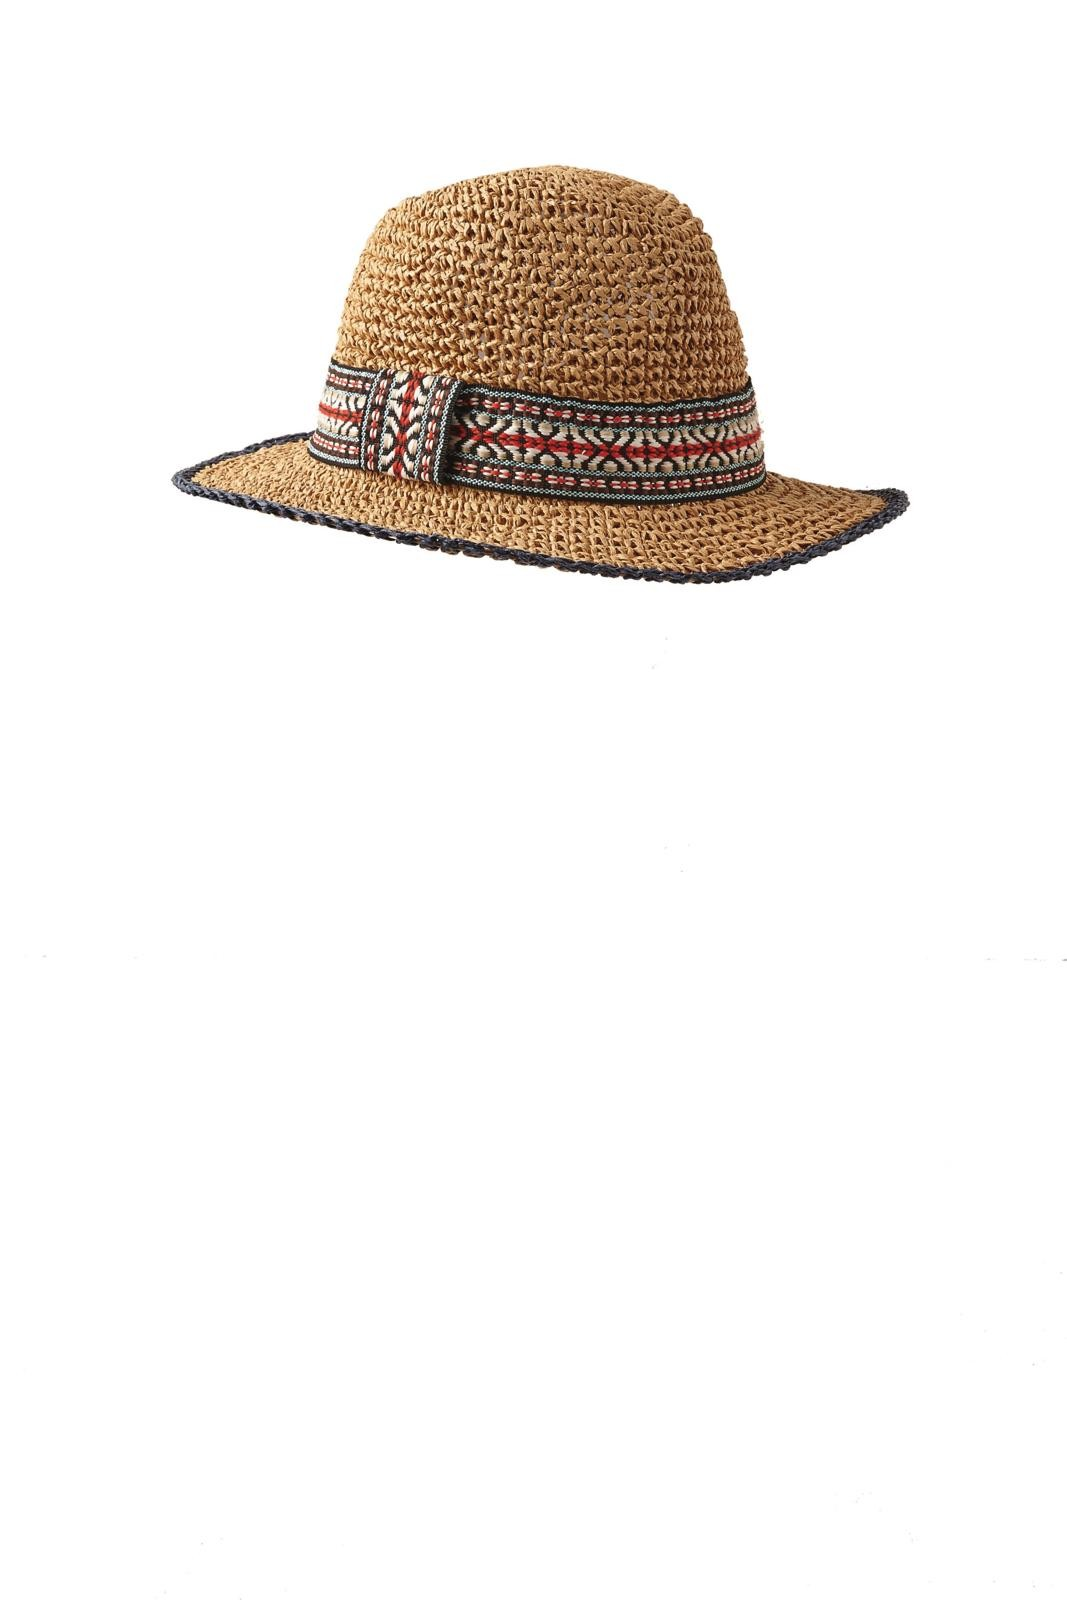 Hartford Straw Fedora Hat 38 v2_preview